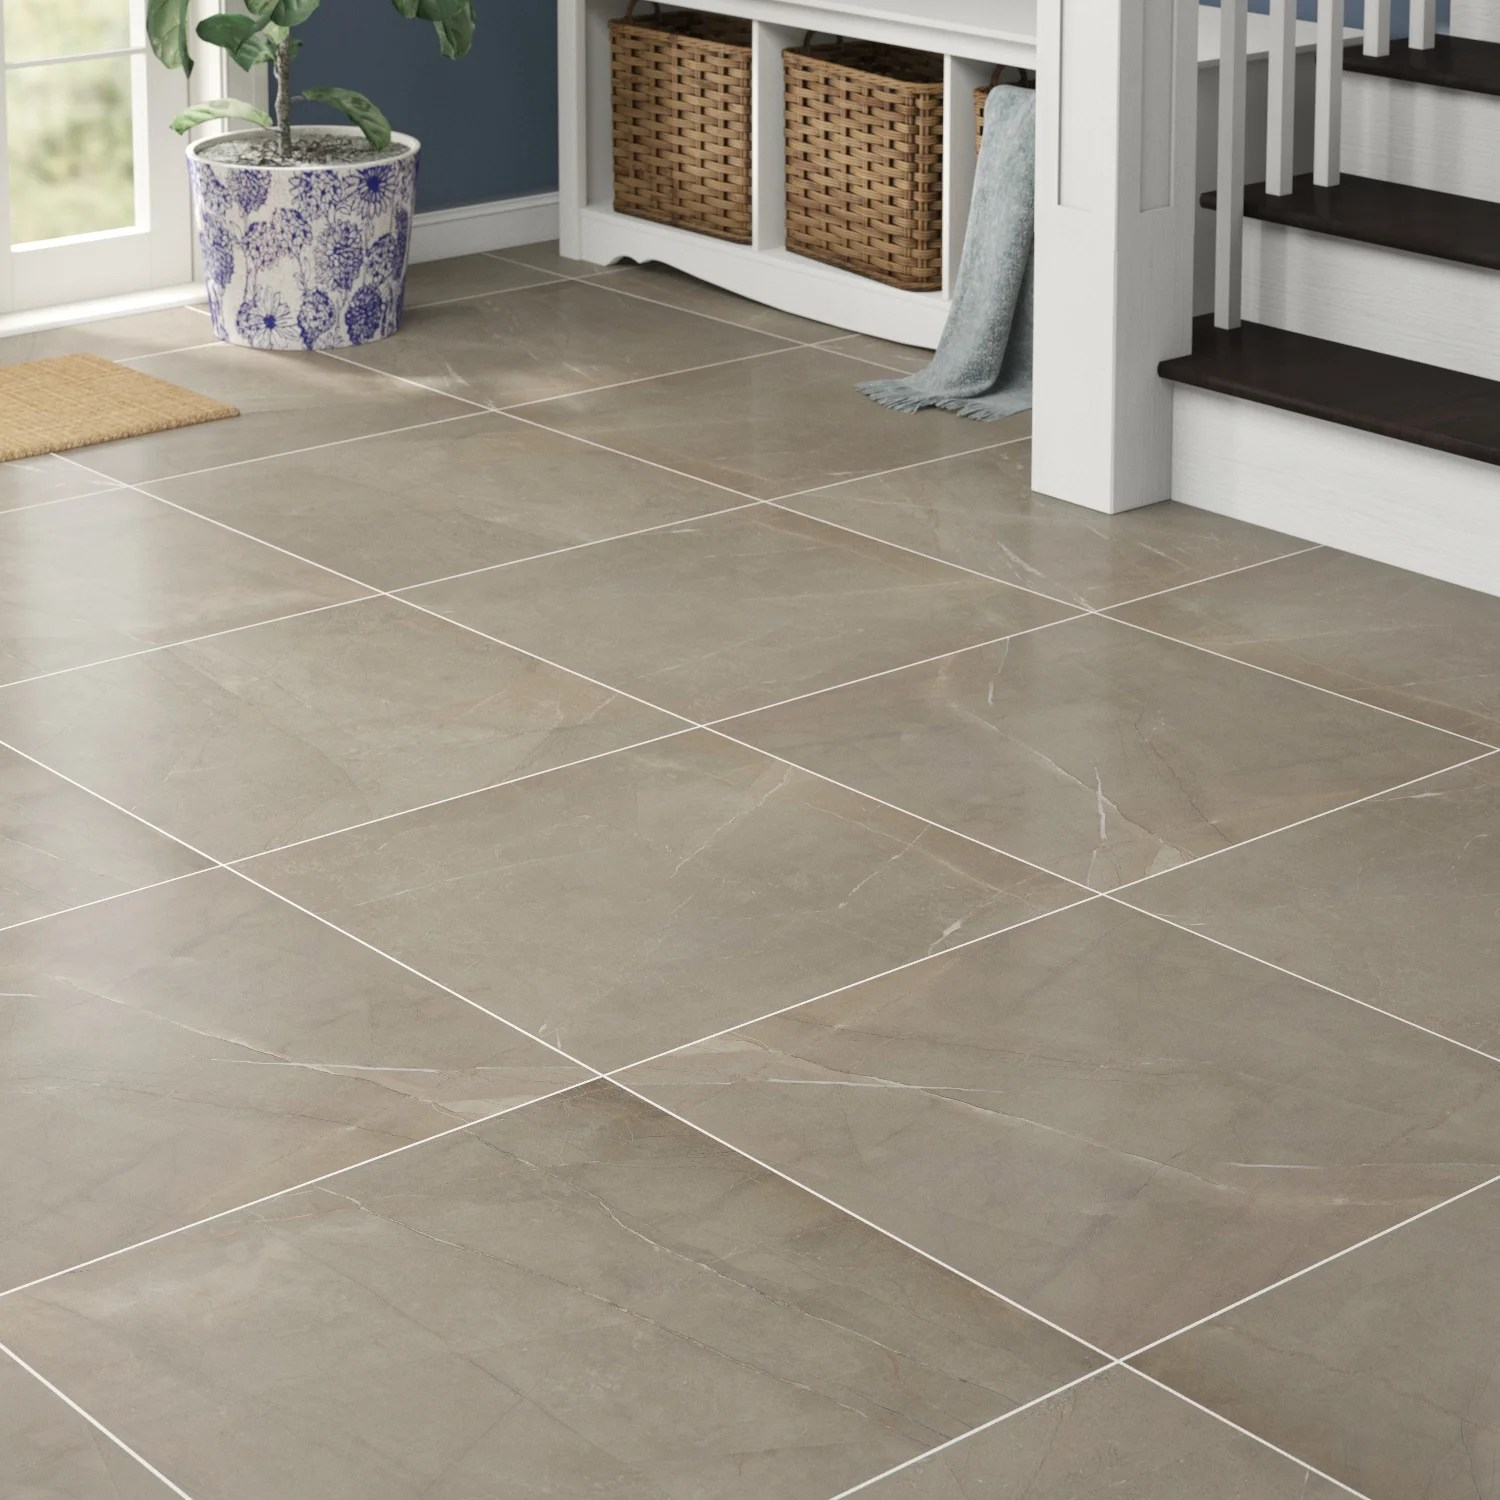 The Tile Shops Indianapolis store is located at 5531 East 82nd Street in Indianapolis IN 46250. Bedrosians Pulpis 24 X 24 Porcelain Wall Floor Tile Wayfair